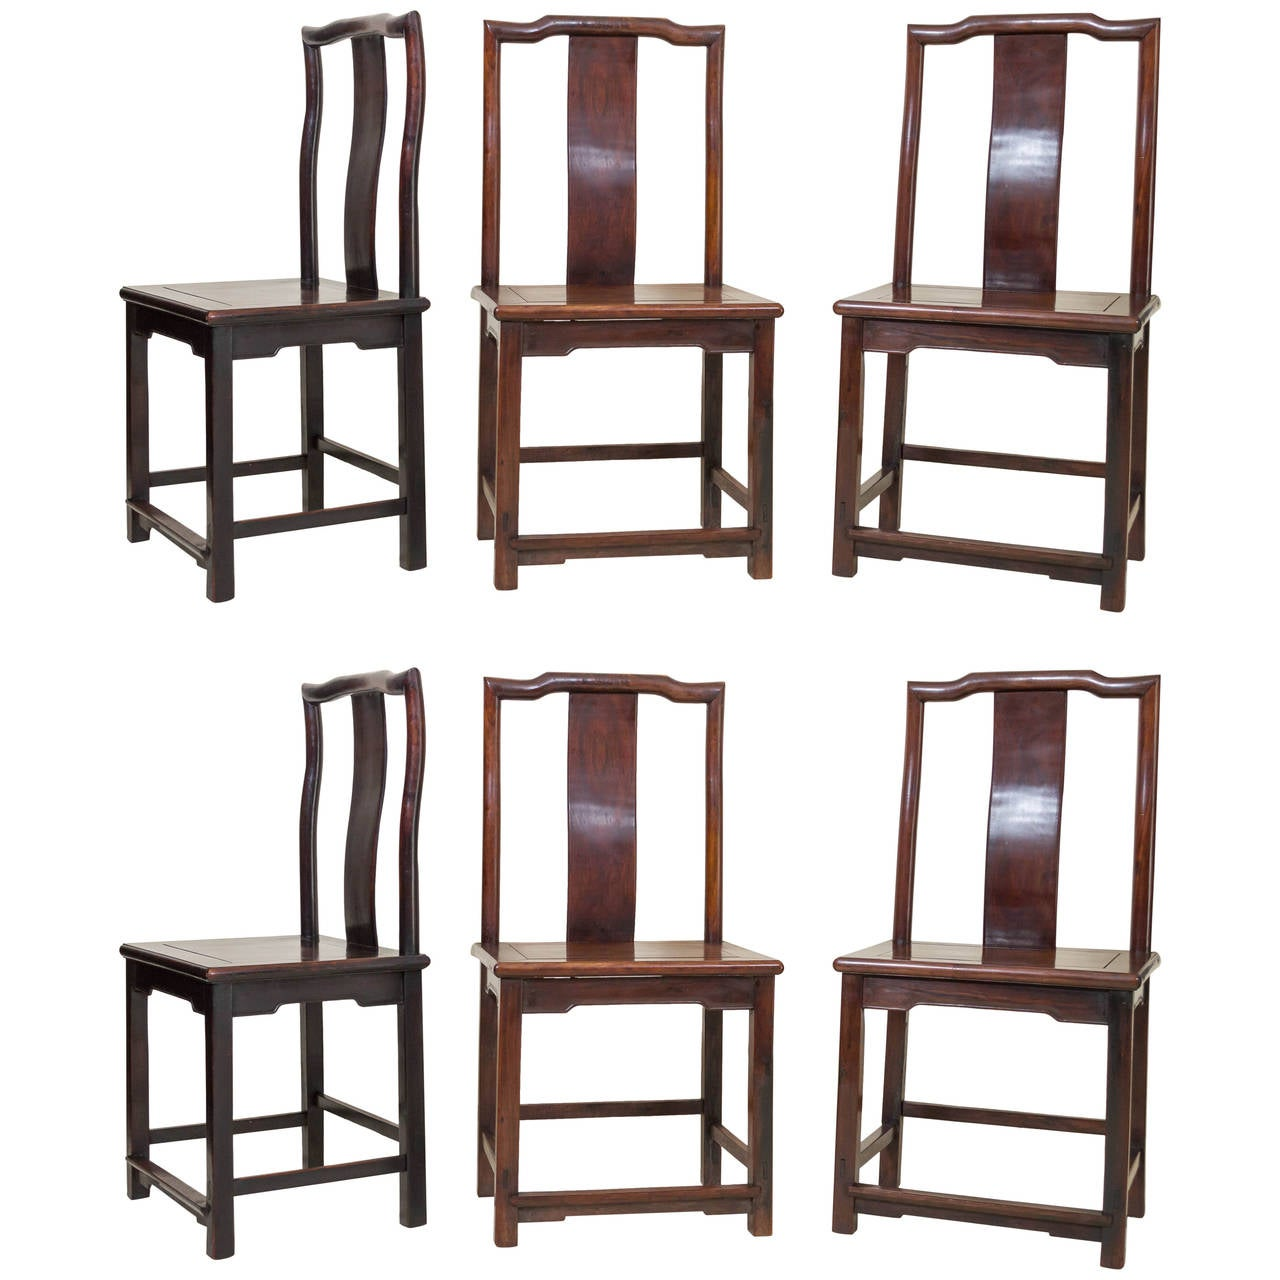 Set of six 19th century chinese rosewood chairs in the ming dynasty style for sale